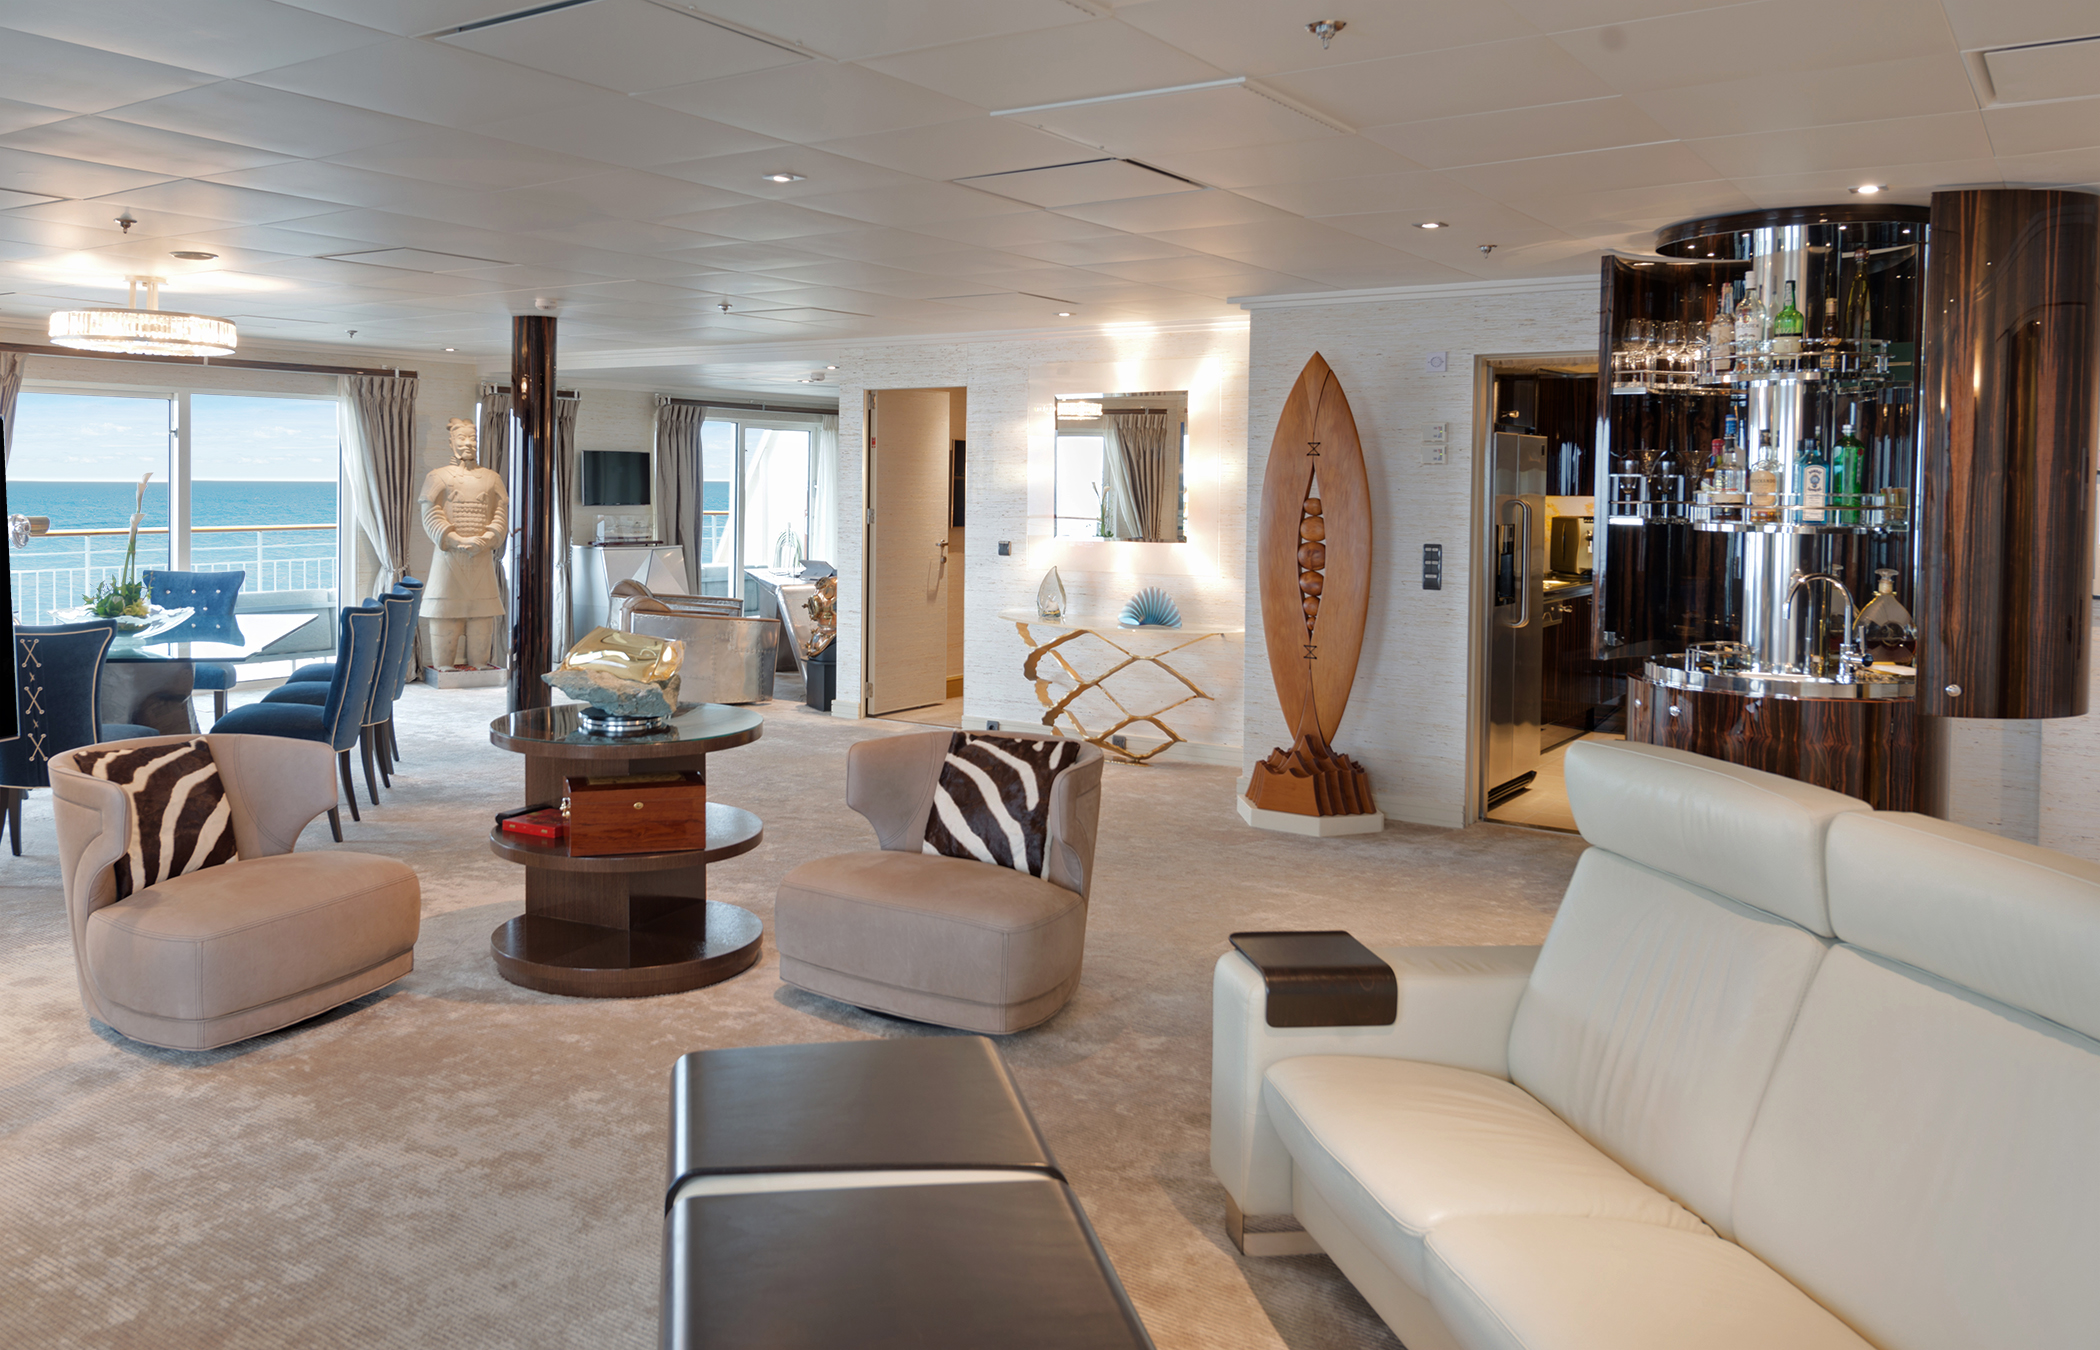 The World Residences at Sea, Daily Edit